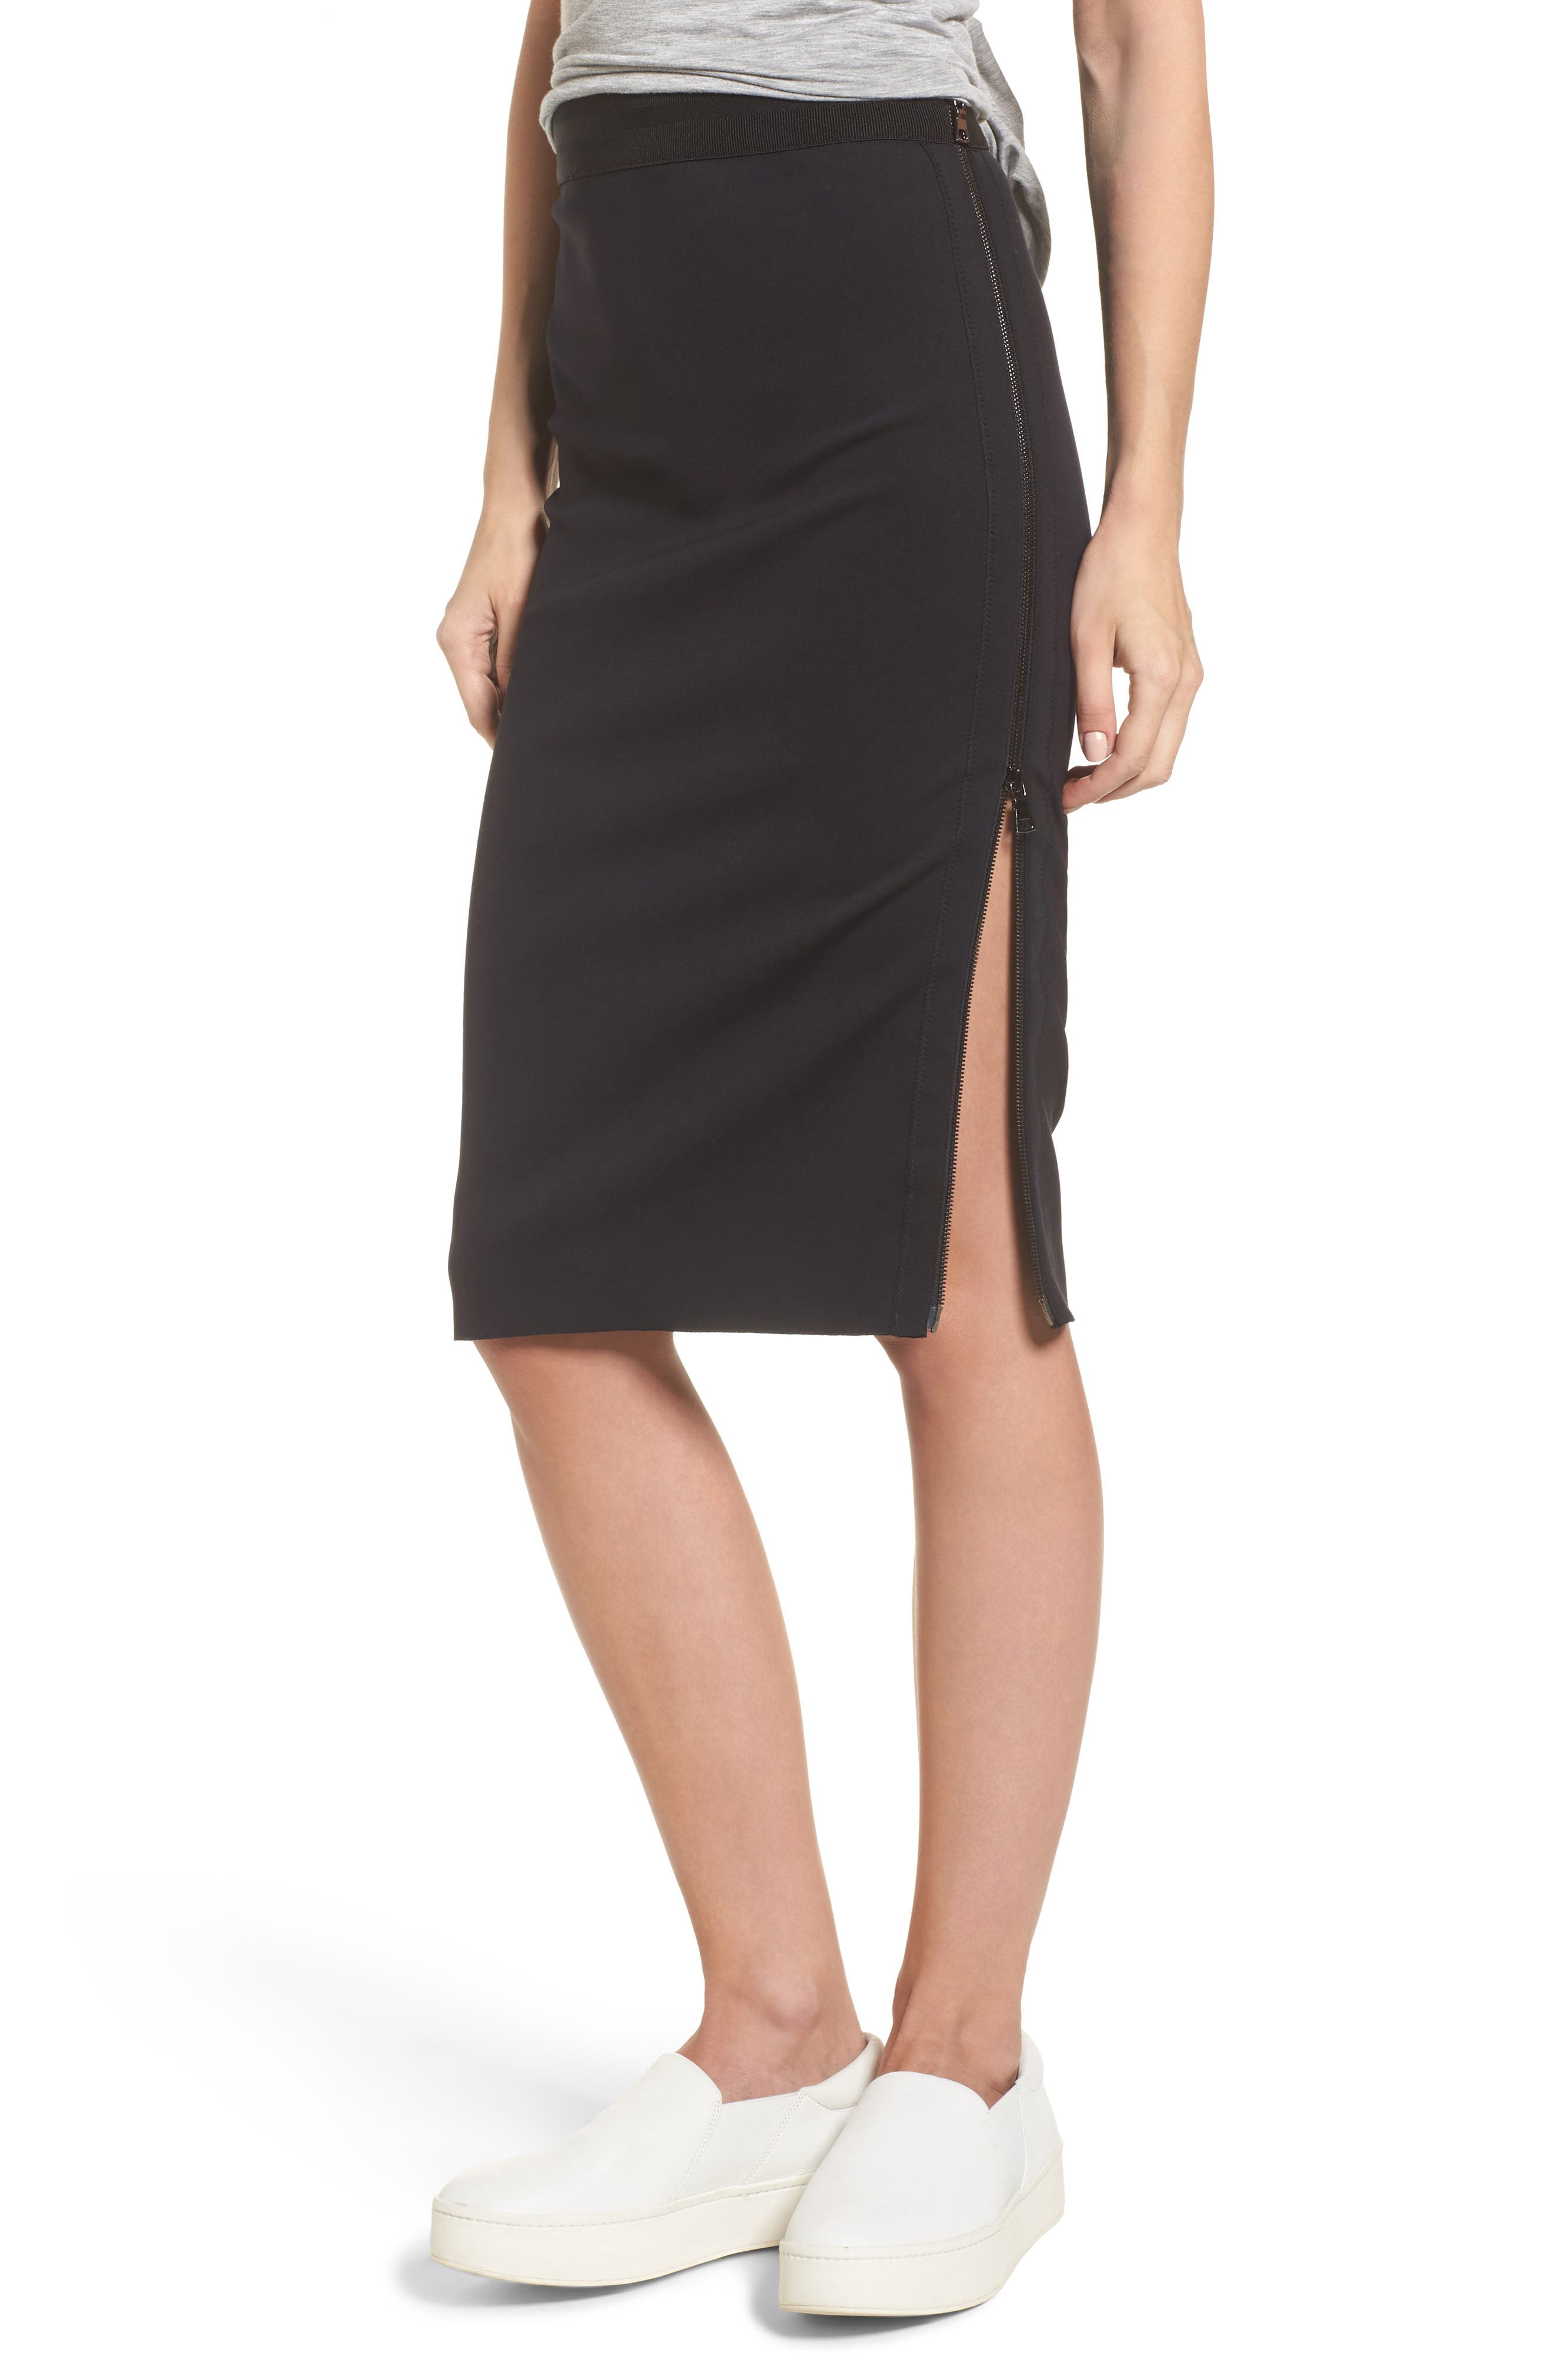 Alternate Image 1 Selected - James Perse Side Zip Pencil Skirt